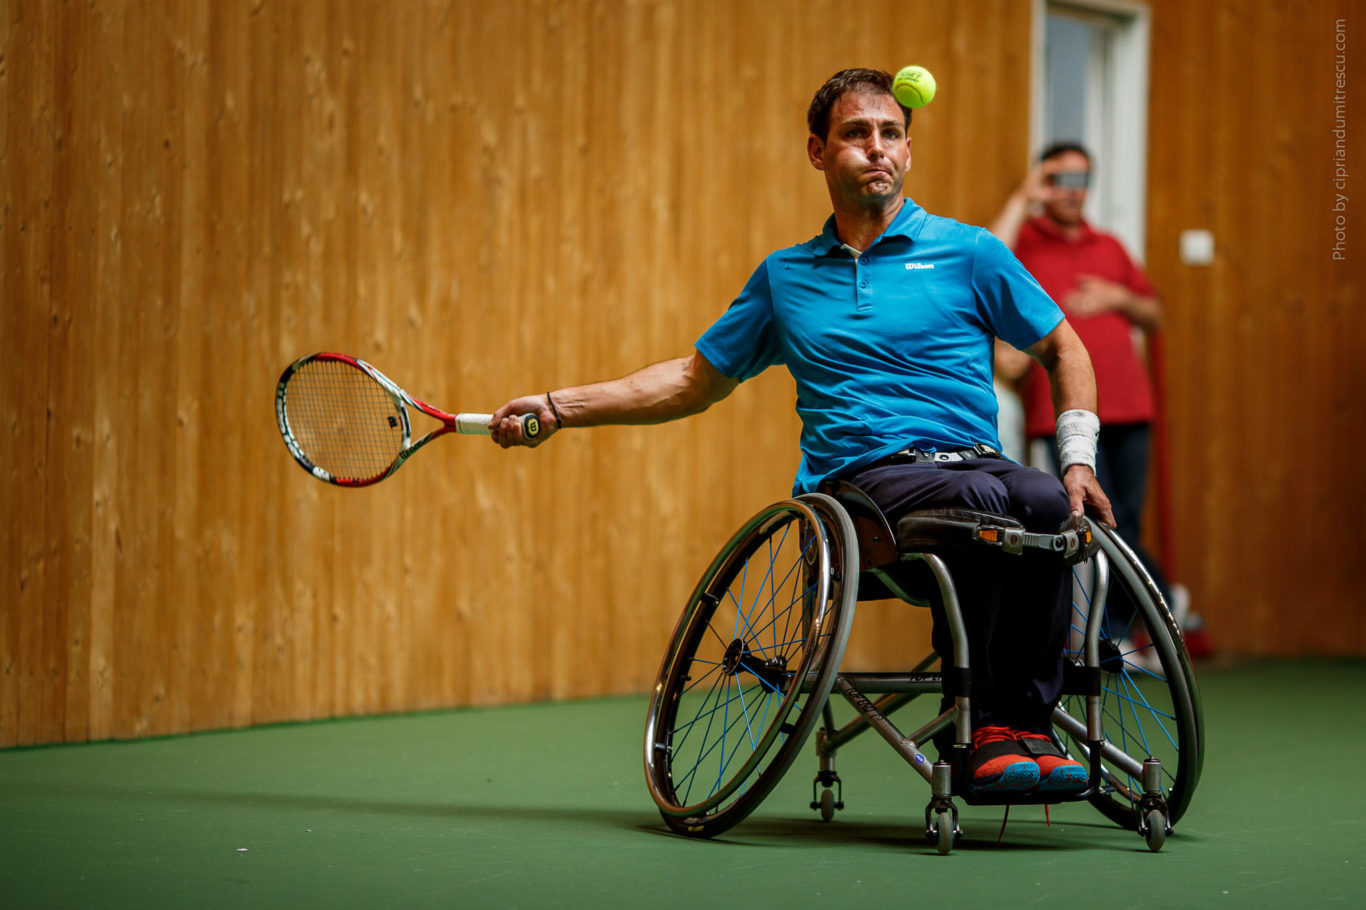 034-Bucharest-Open-Wheelchair-2016-Day-One-Photographer-Ciprian-Dumitrescu